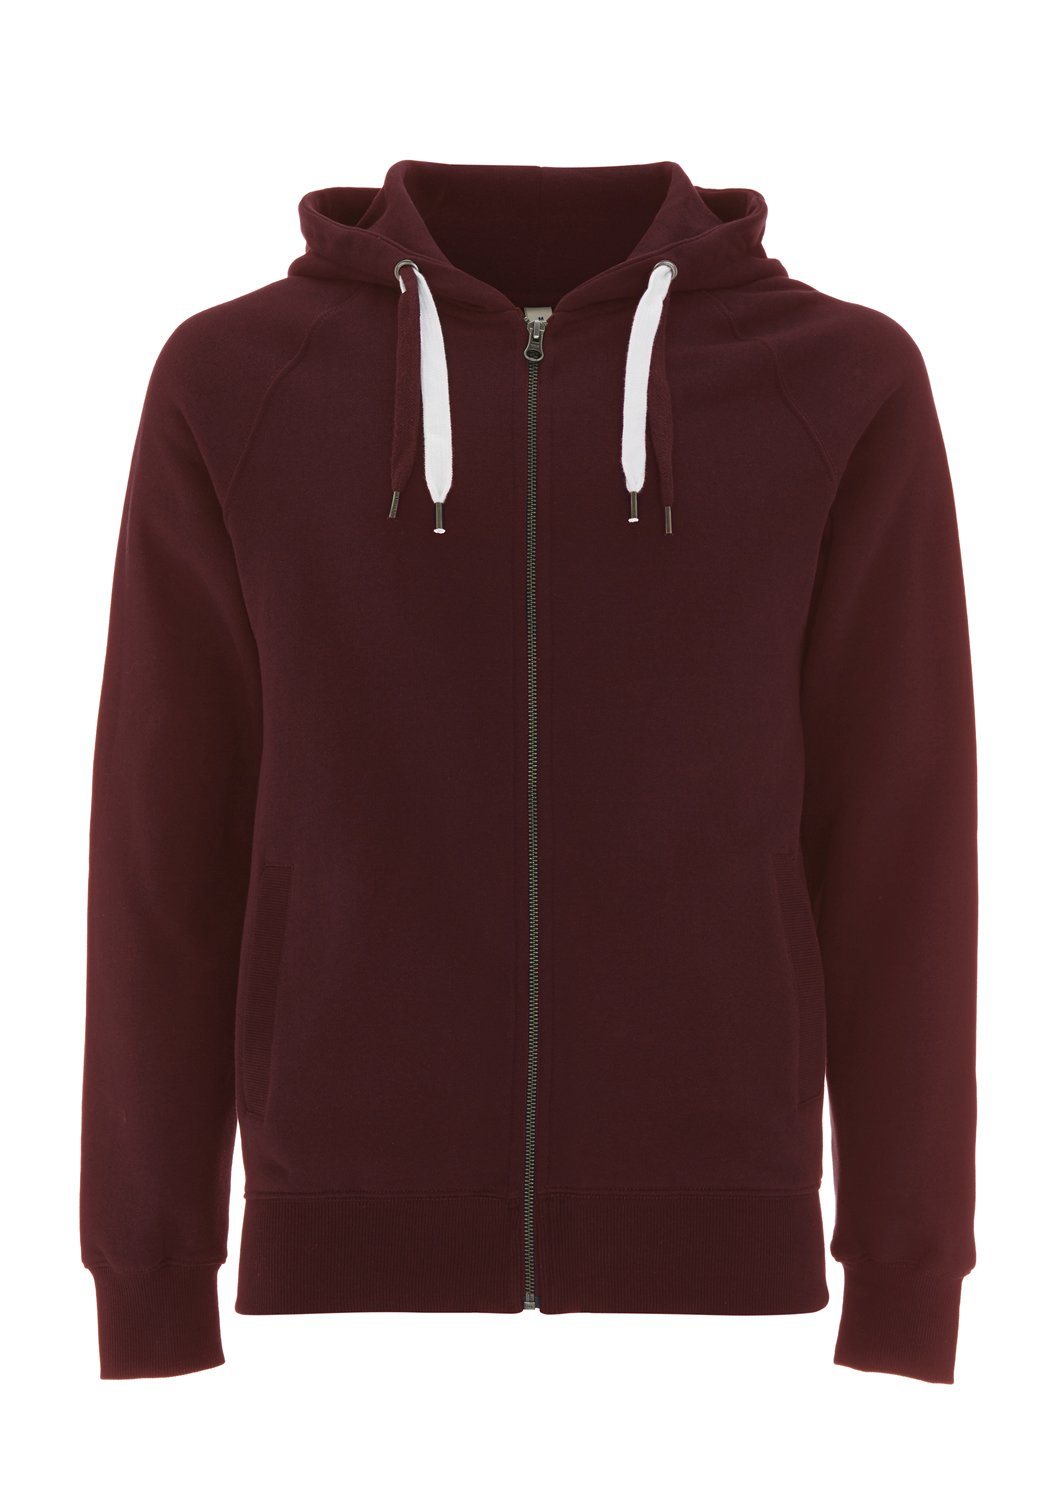 Underhood of London Claret Red Hoodie for Men - X Small - XS - Boys Zipper Zip Up Cotton Sweatshirt by Underhood of London